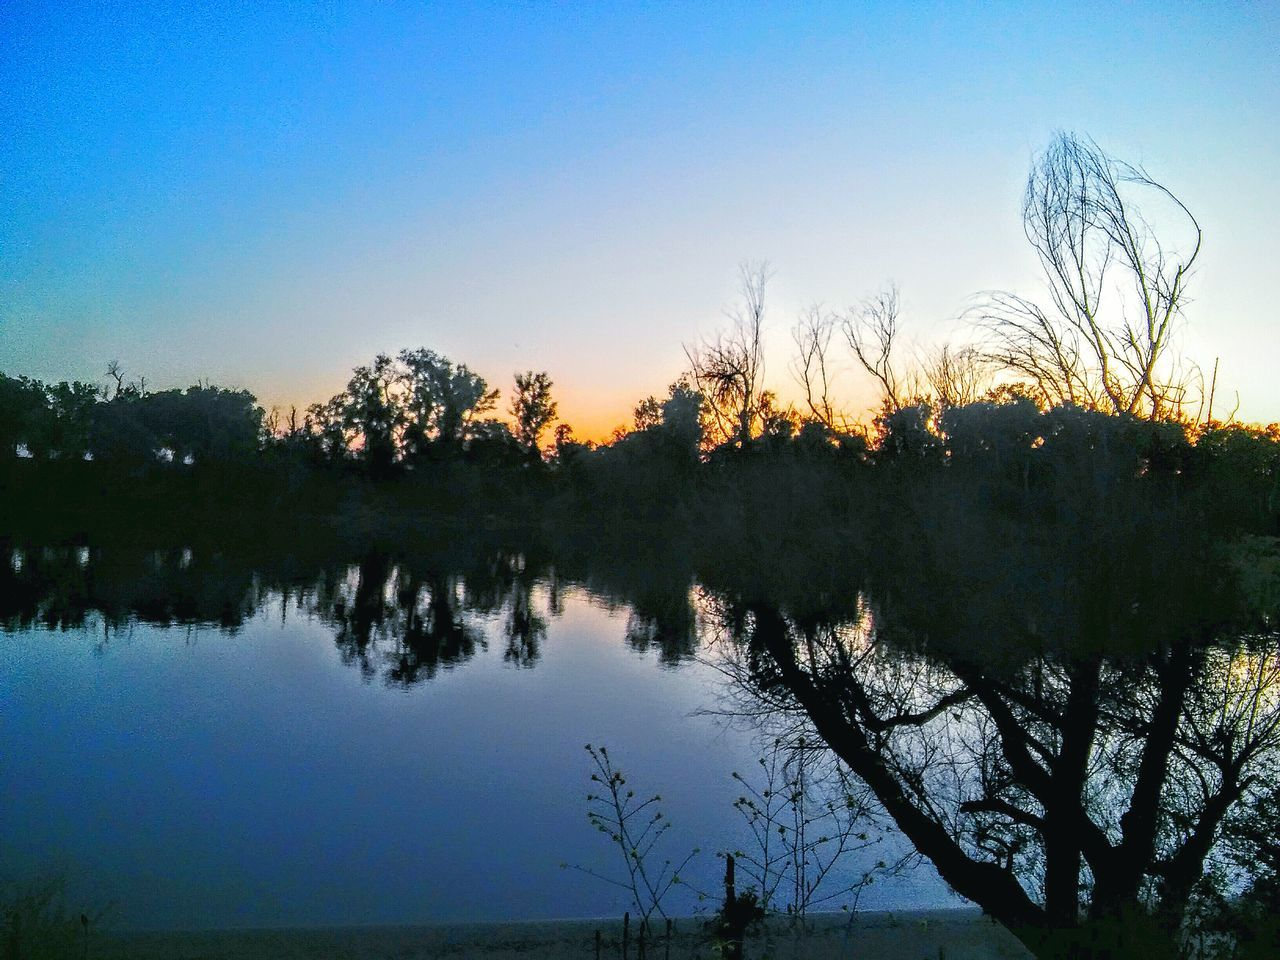 EyeEm Best Edits Beauty In Nature Eyem Nature Lovers  Nature On Your Doorstep Sunset Taking Photos Nature My Point Of View My Photography Trees Tree Porn Tree Silhouettes Tree And Sky Reflections On The Water Reflections On The River Sacramento River